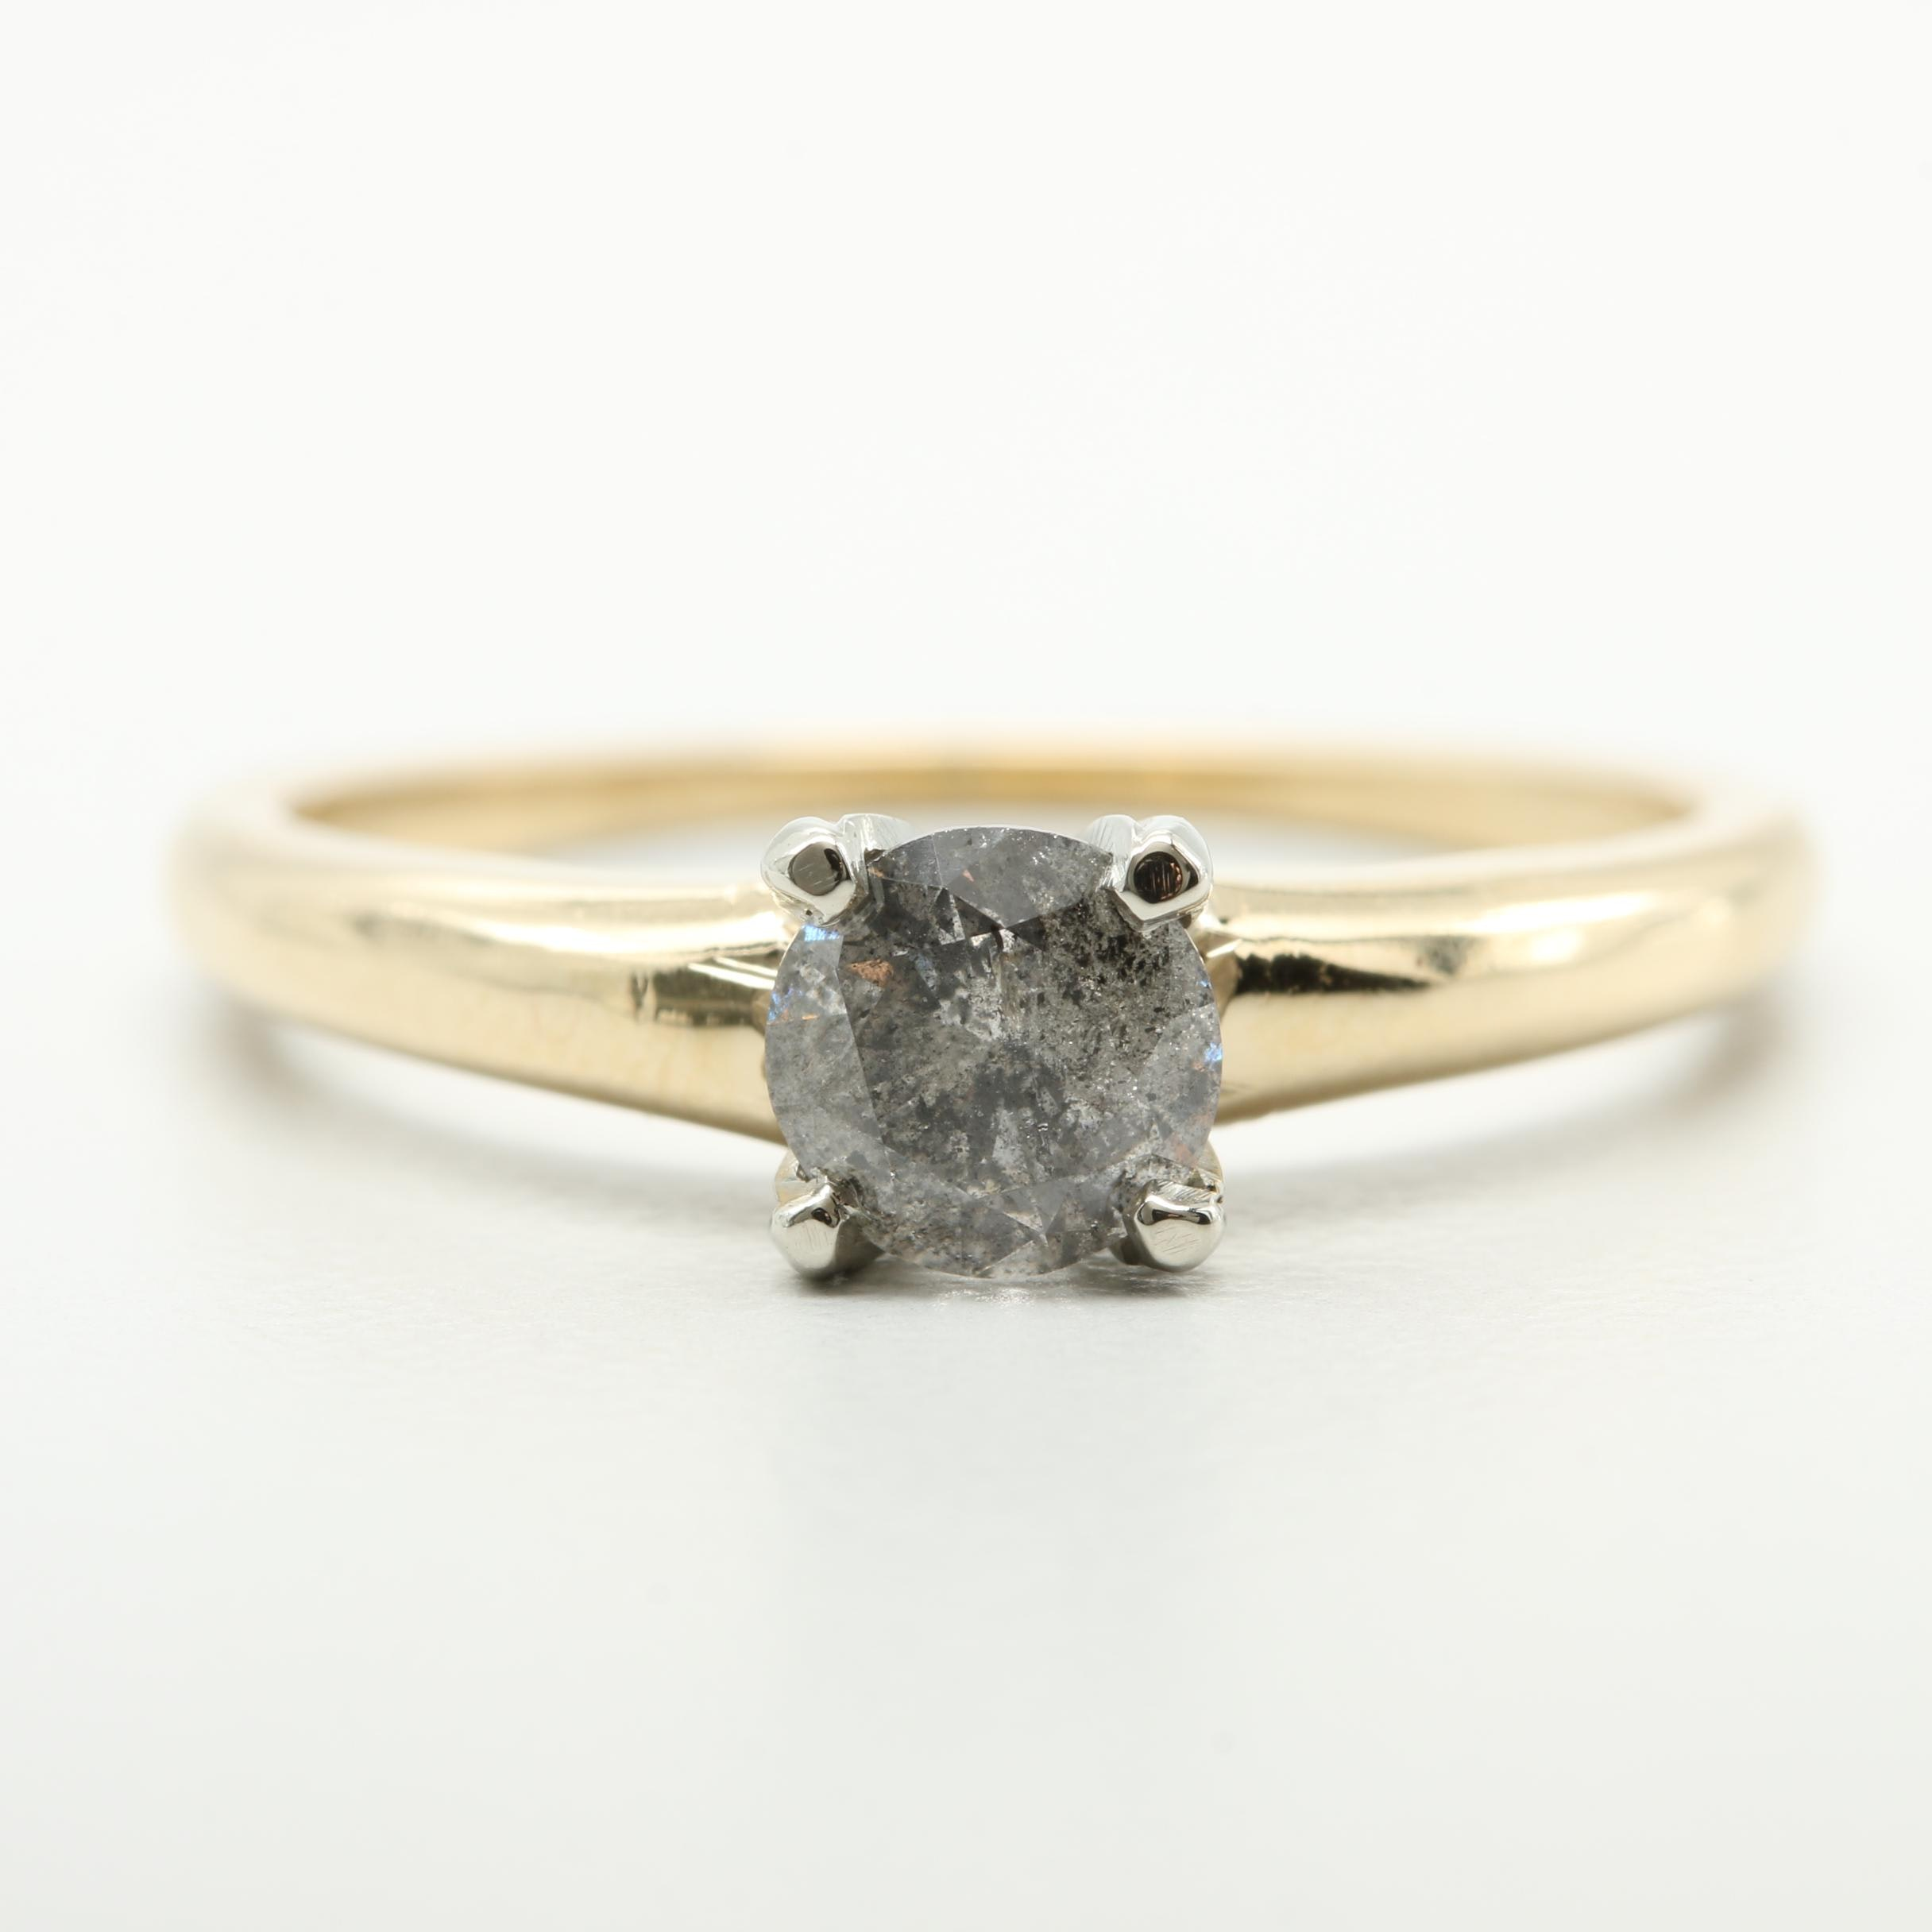 Krementz 14K Yellow Gold Diamond Solitaire Ring